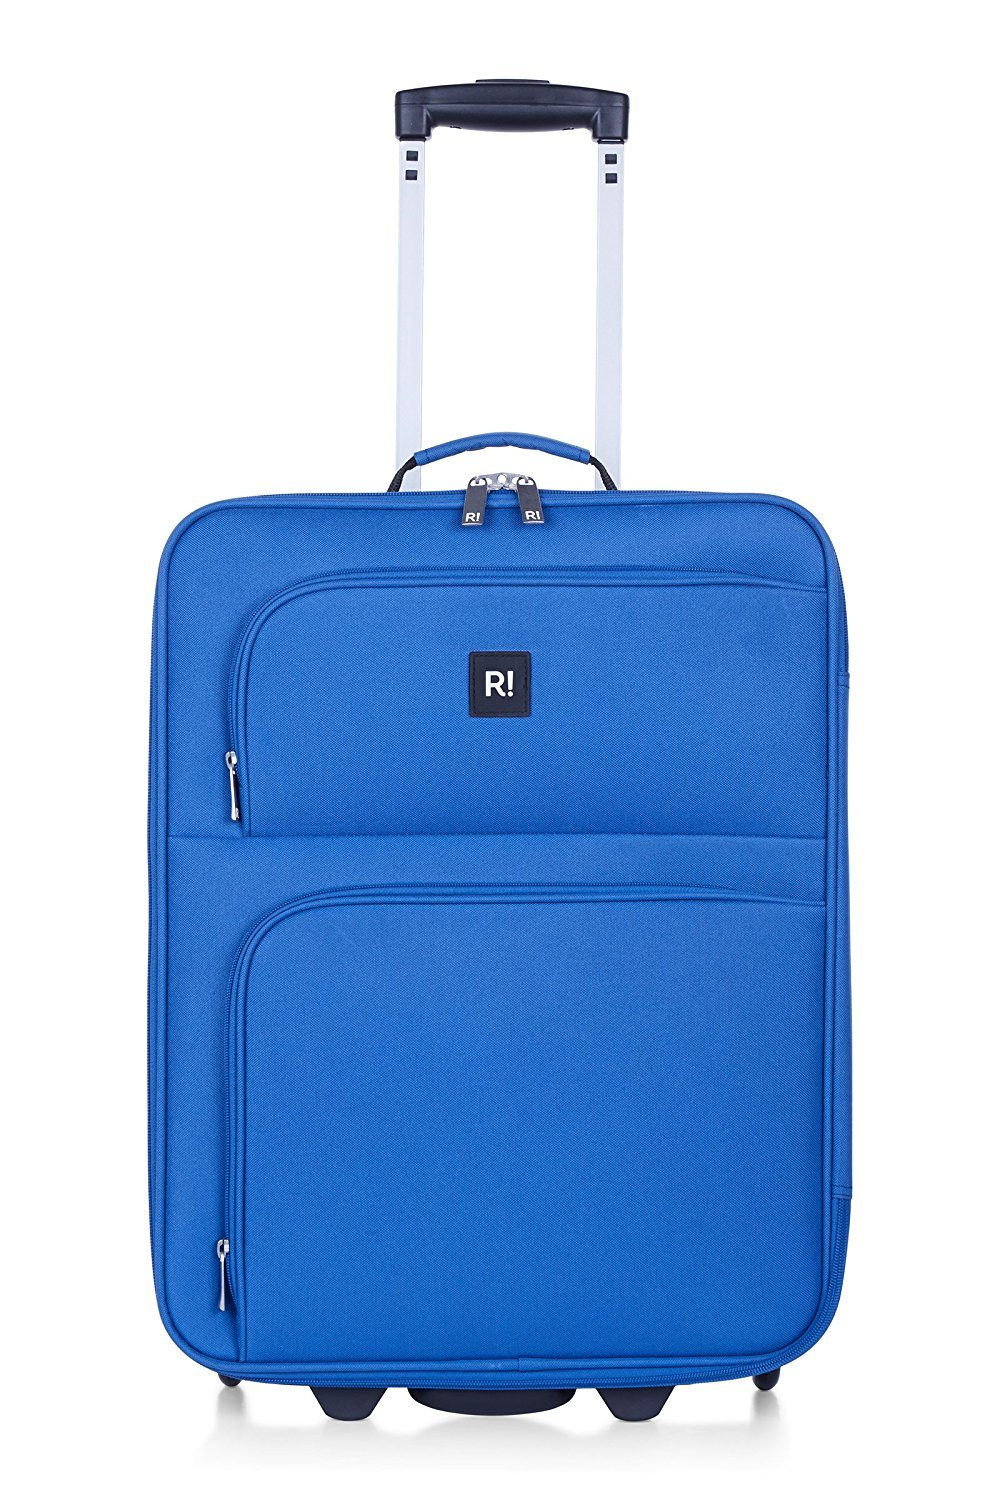 REVELATION Suitcase Alex Case blue